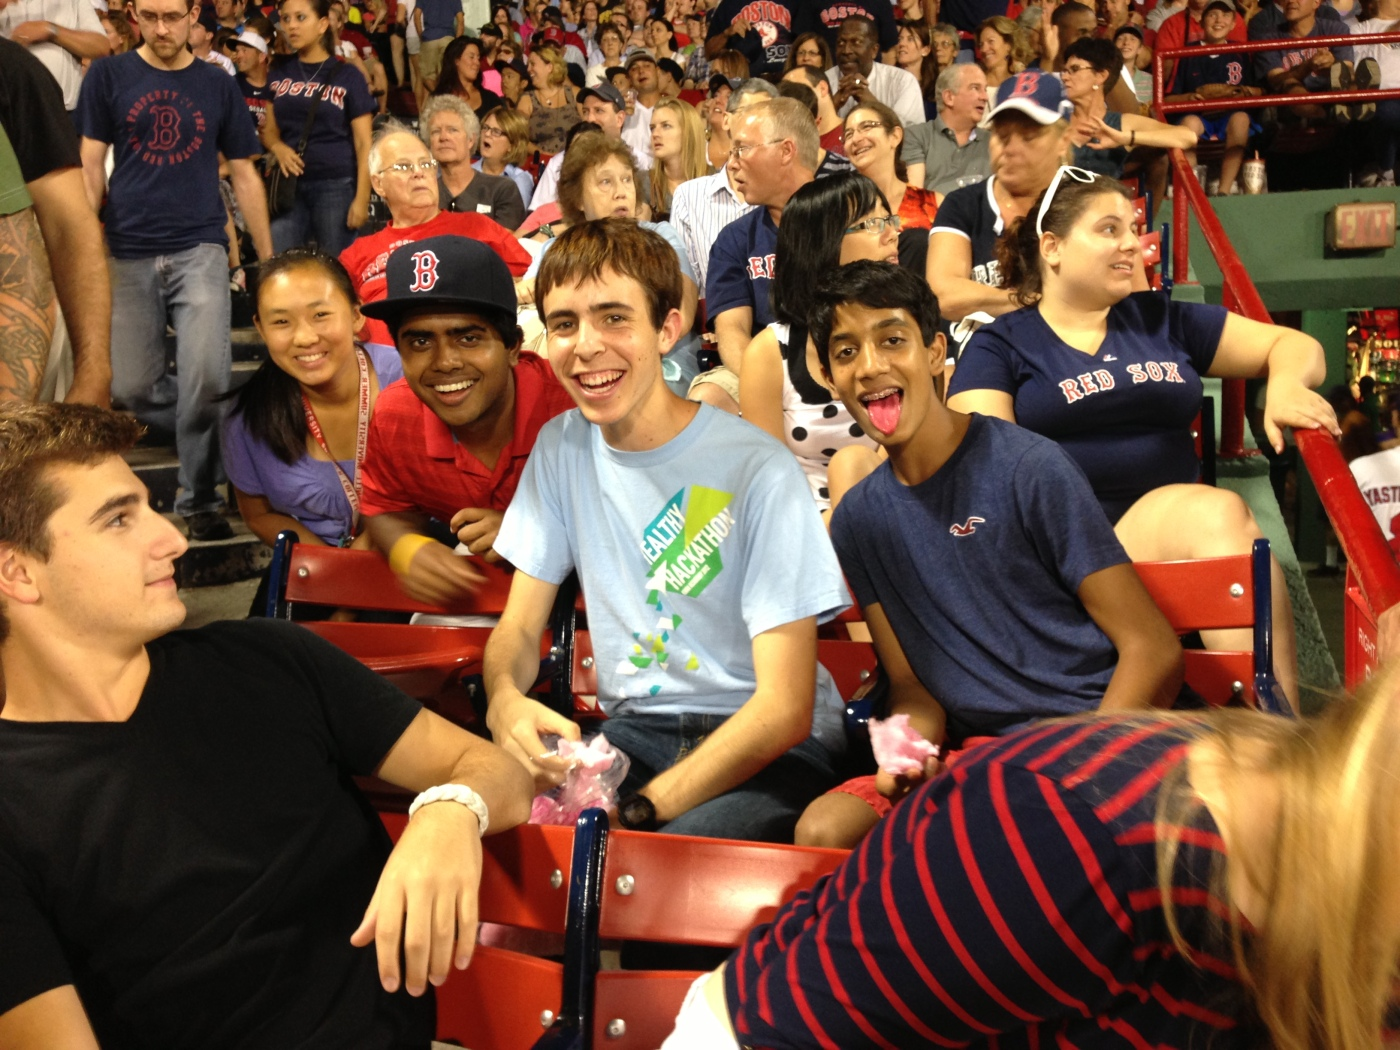 Goofing off at the game